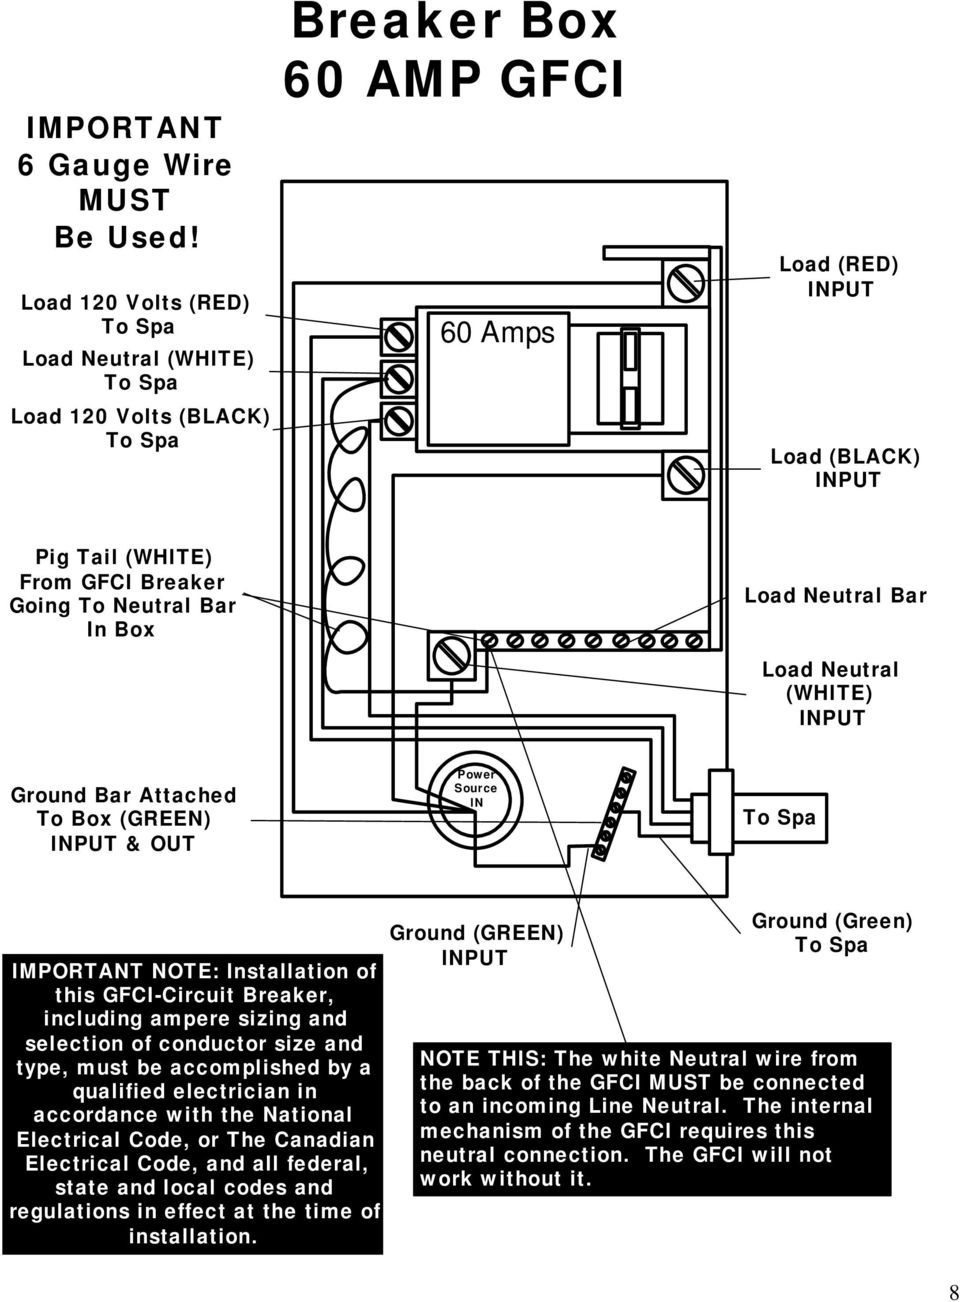 Attractive Master Spa Wiring Diagram Pictures - Wiring Diagram Ideas ...